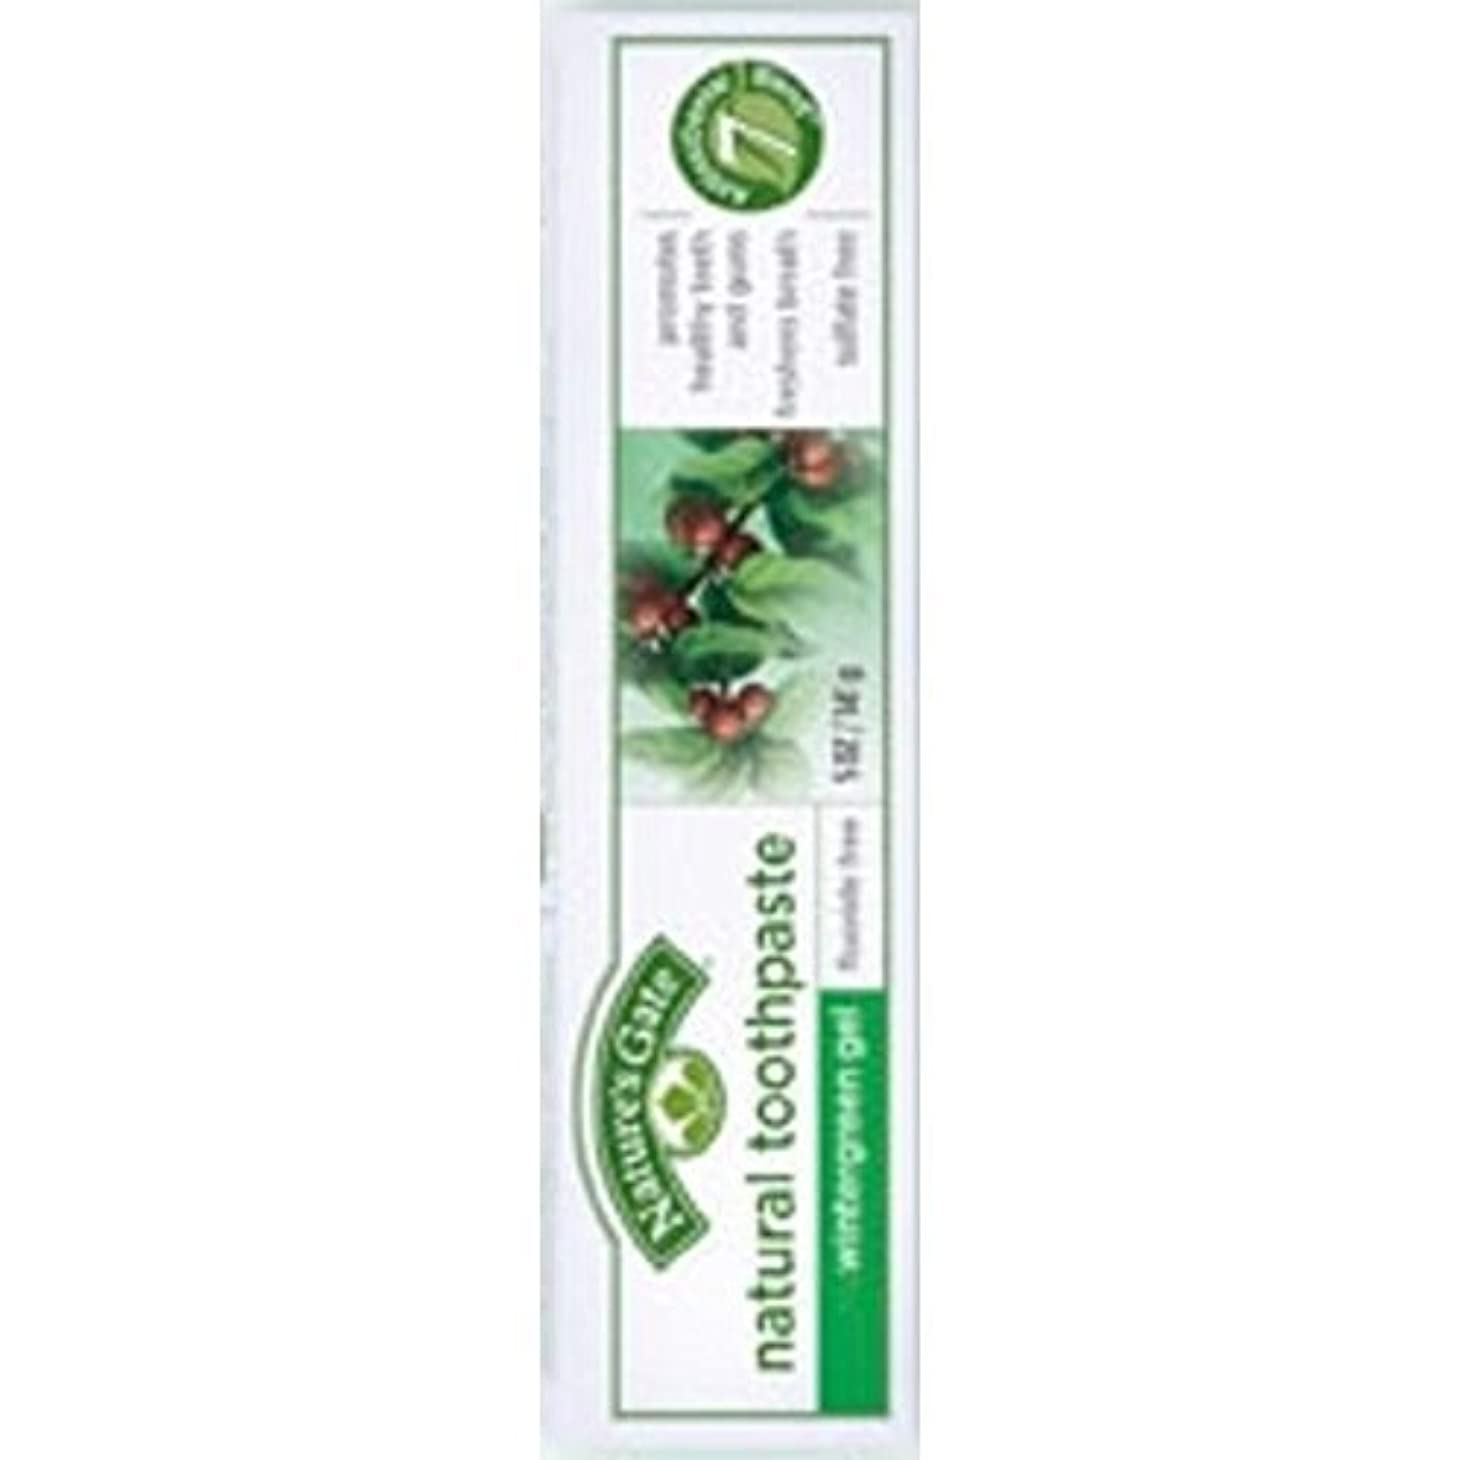 Nature's Gate Natural Toothpaste Gel Flouride Free Wintergreen - 5 oz - Case of 6 by Nature's Gate [並行輸入品]